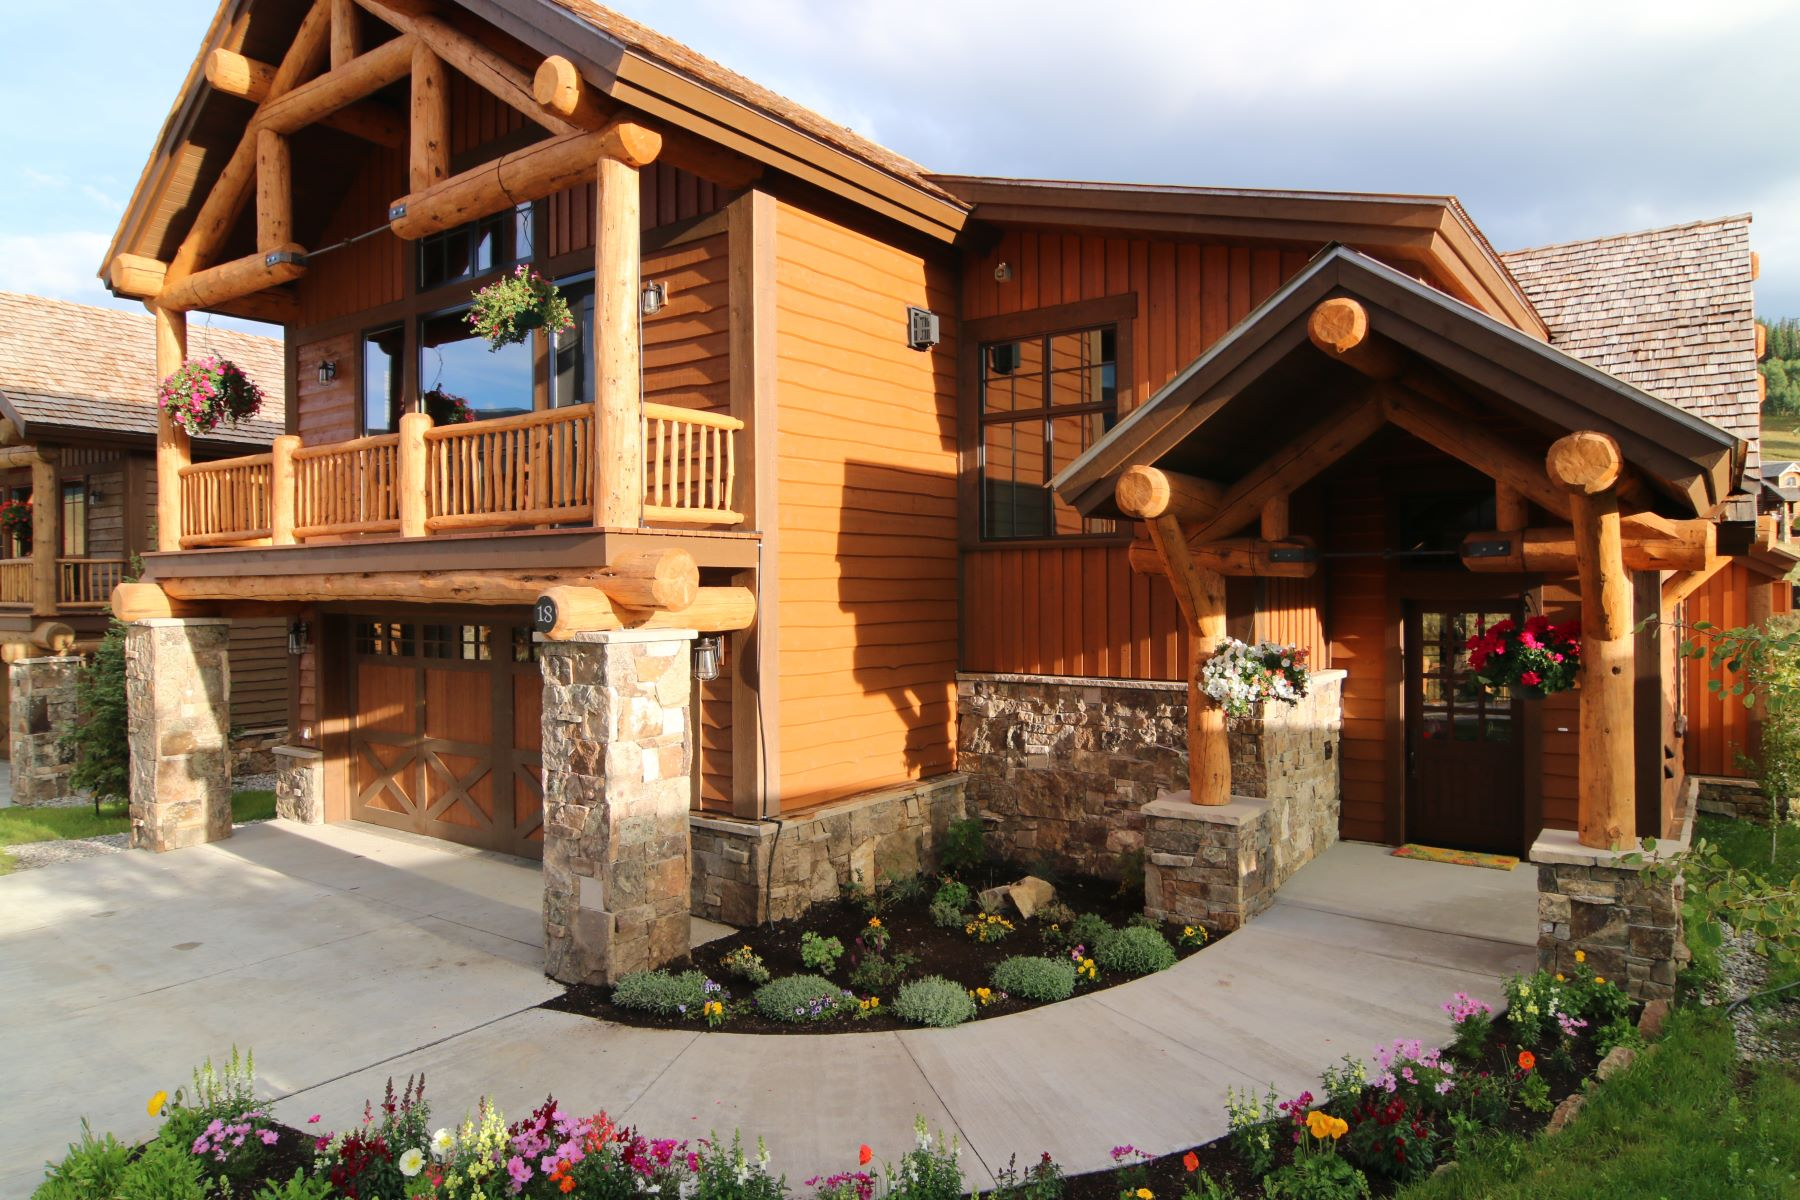 Single Family Homes for Sale at Wildhorse at Prospect New Construction 10 Appaloosa Road Mount Crested Butte, Colorado 81225 United States